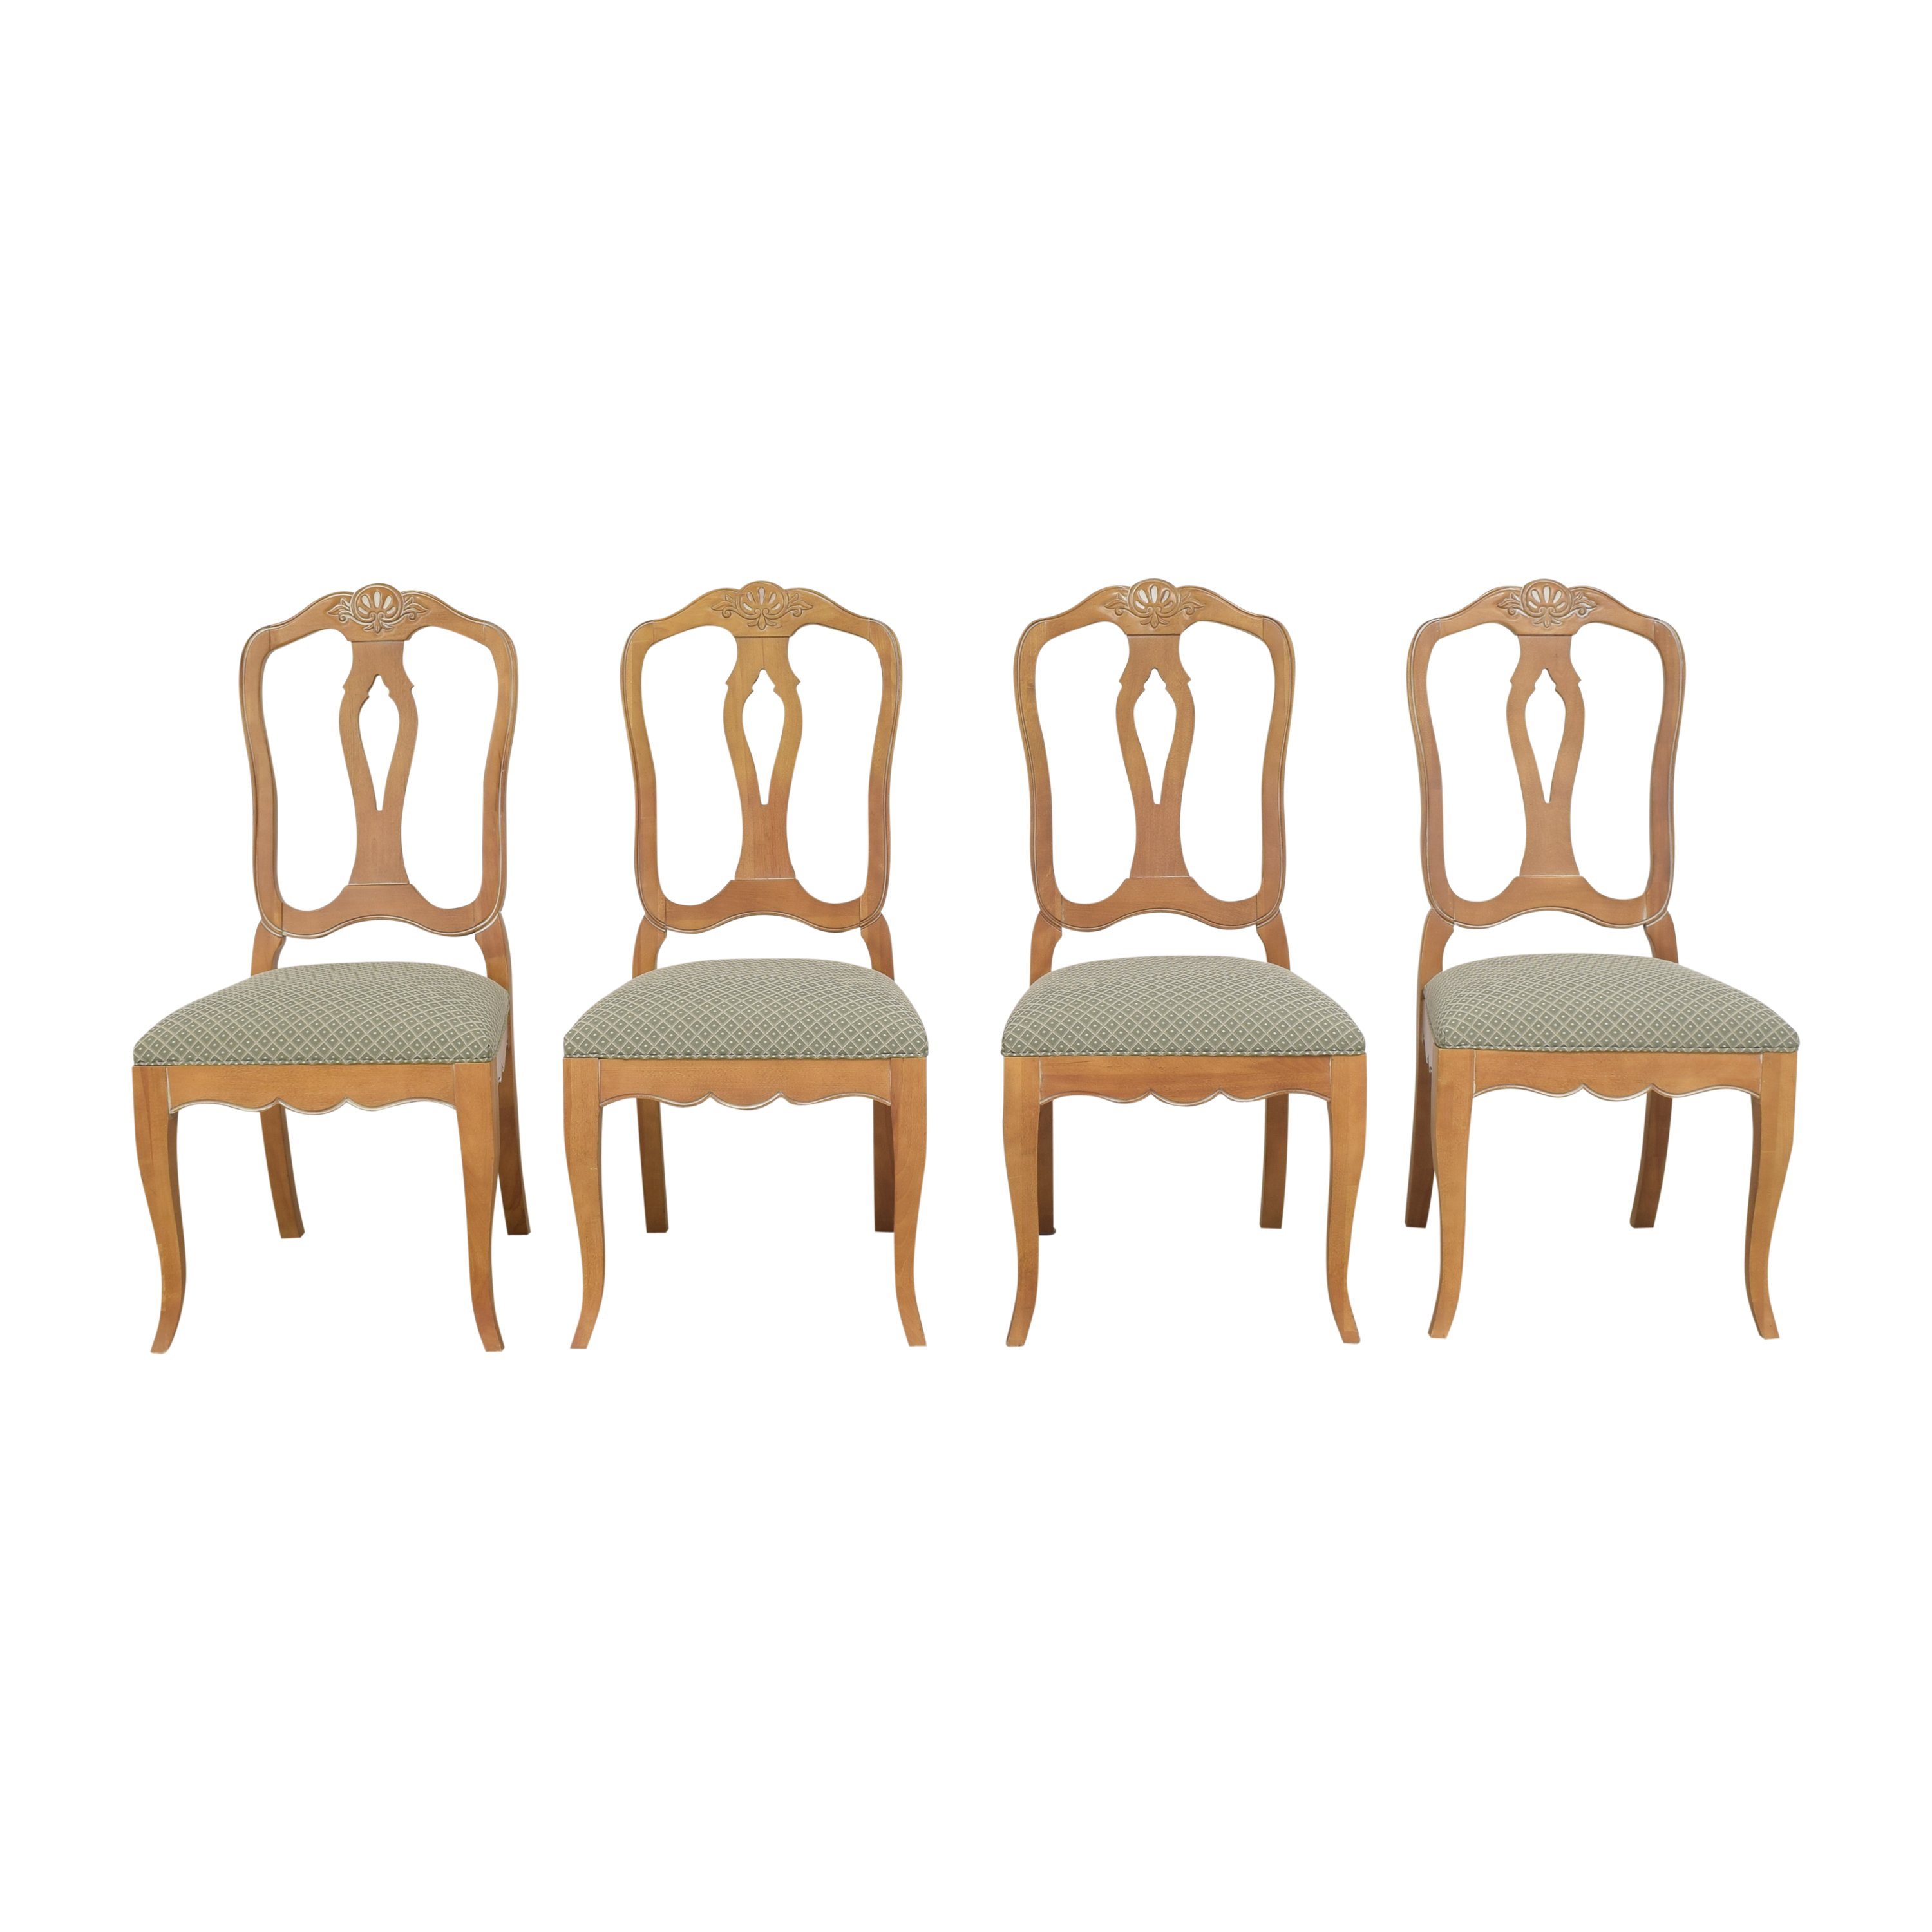 Ethan Allen Ethan Allen Country French Dining Side Chairs on sale